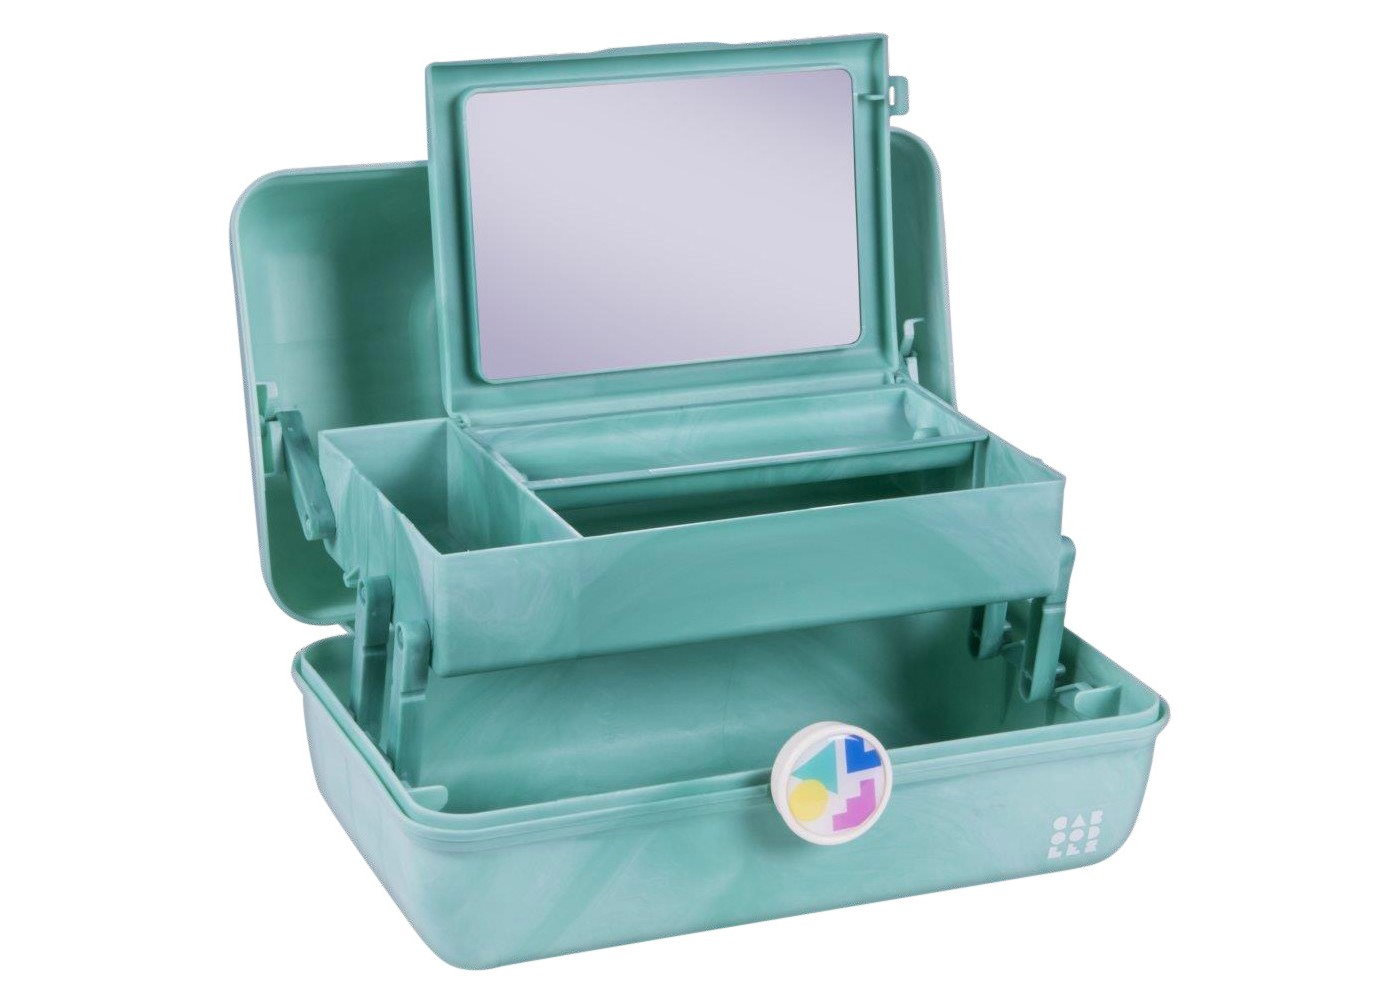 Retro Caboodles On the Go Girl Case Seafoam Marble - image 2 of 3